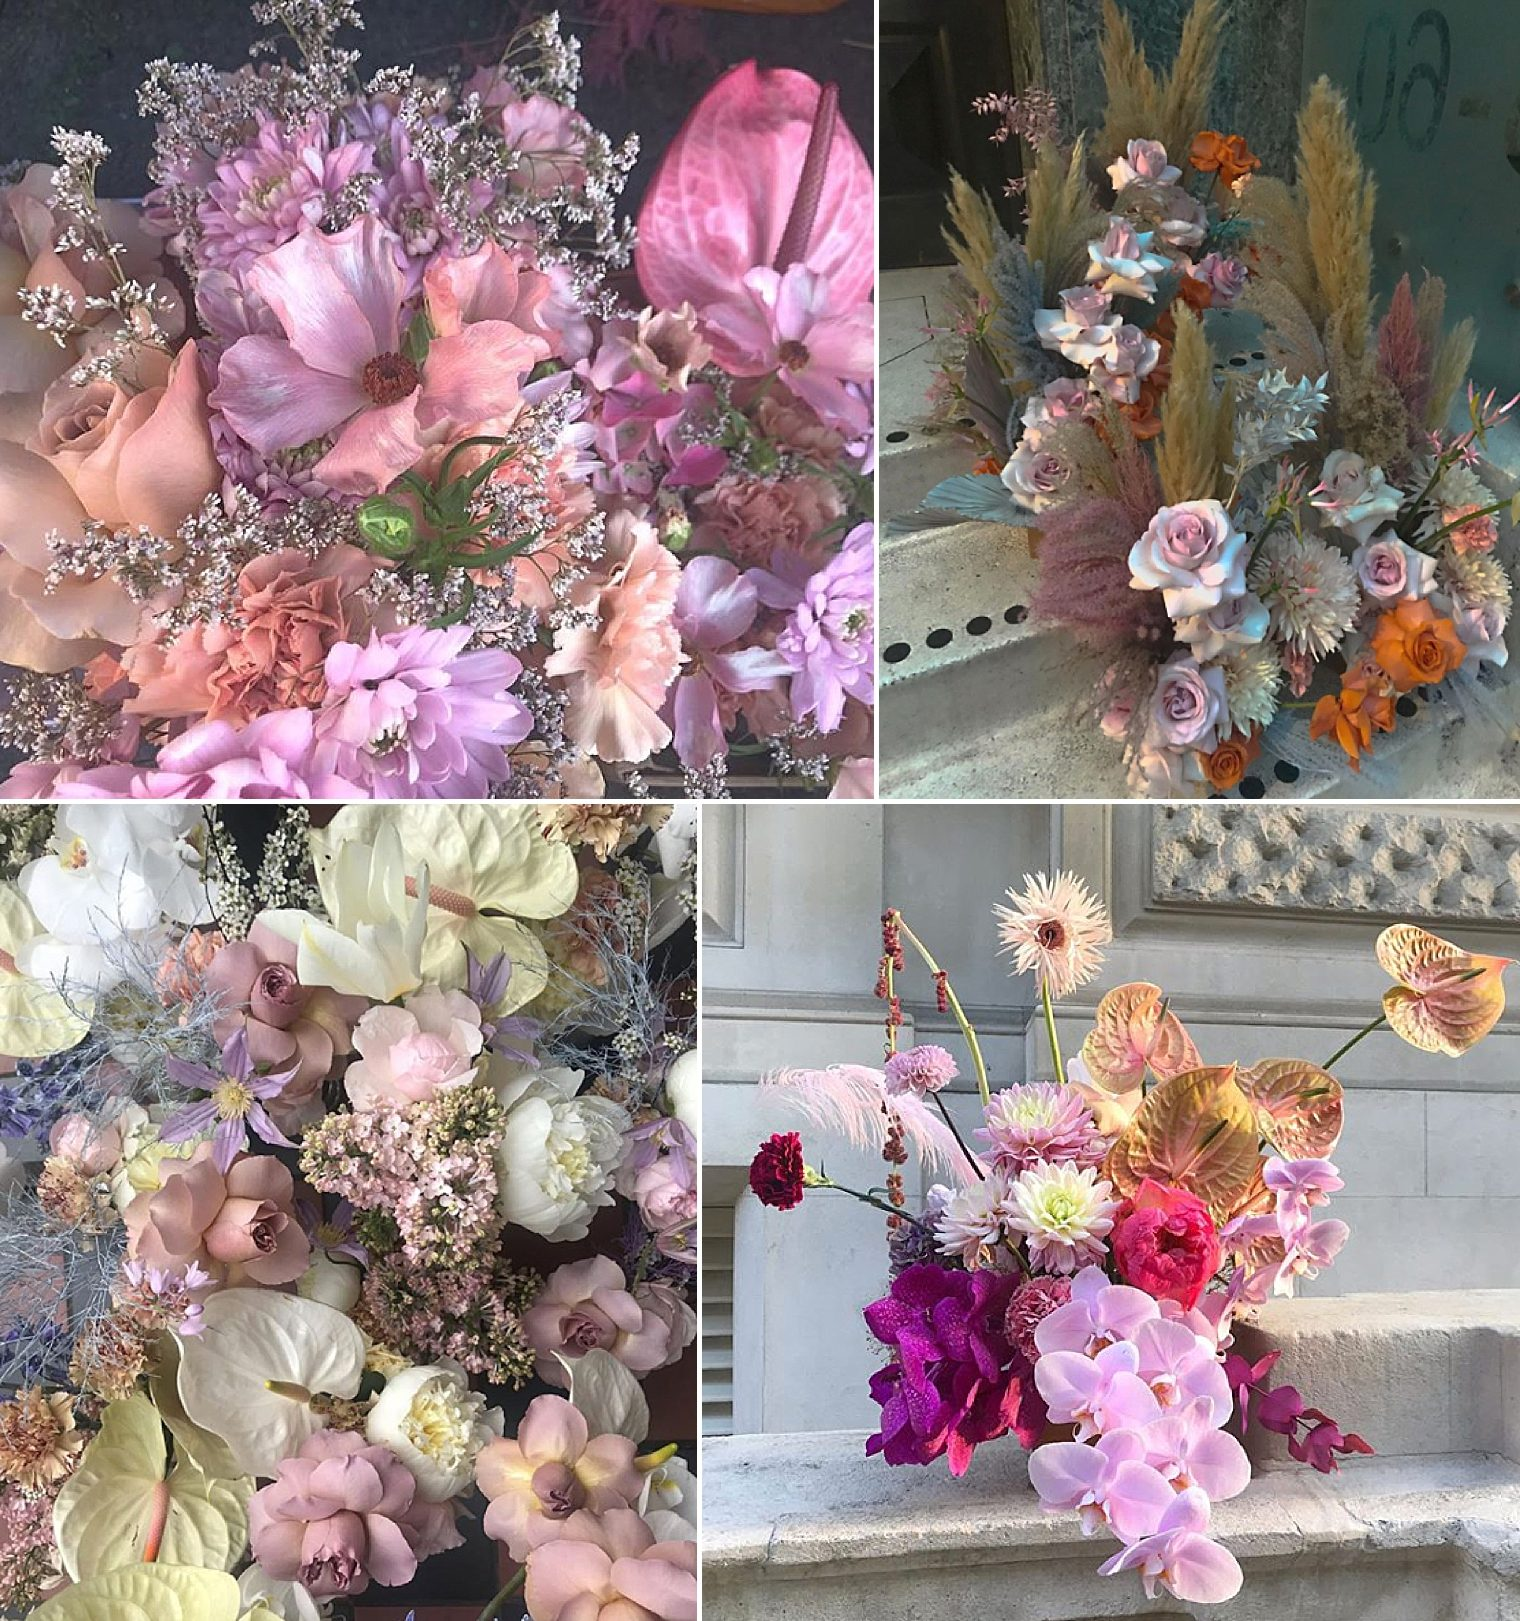 Floristry design and London's Young Creatives with floral designs by PinkGoldPeach